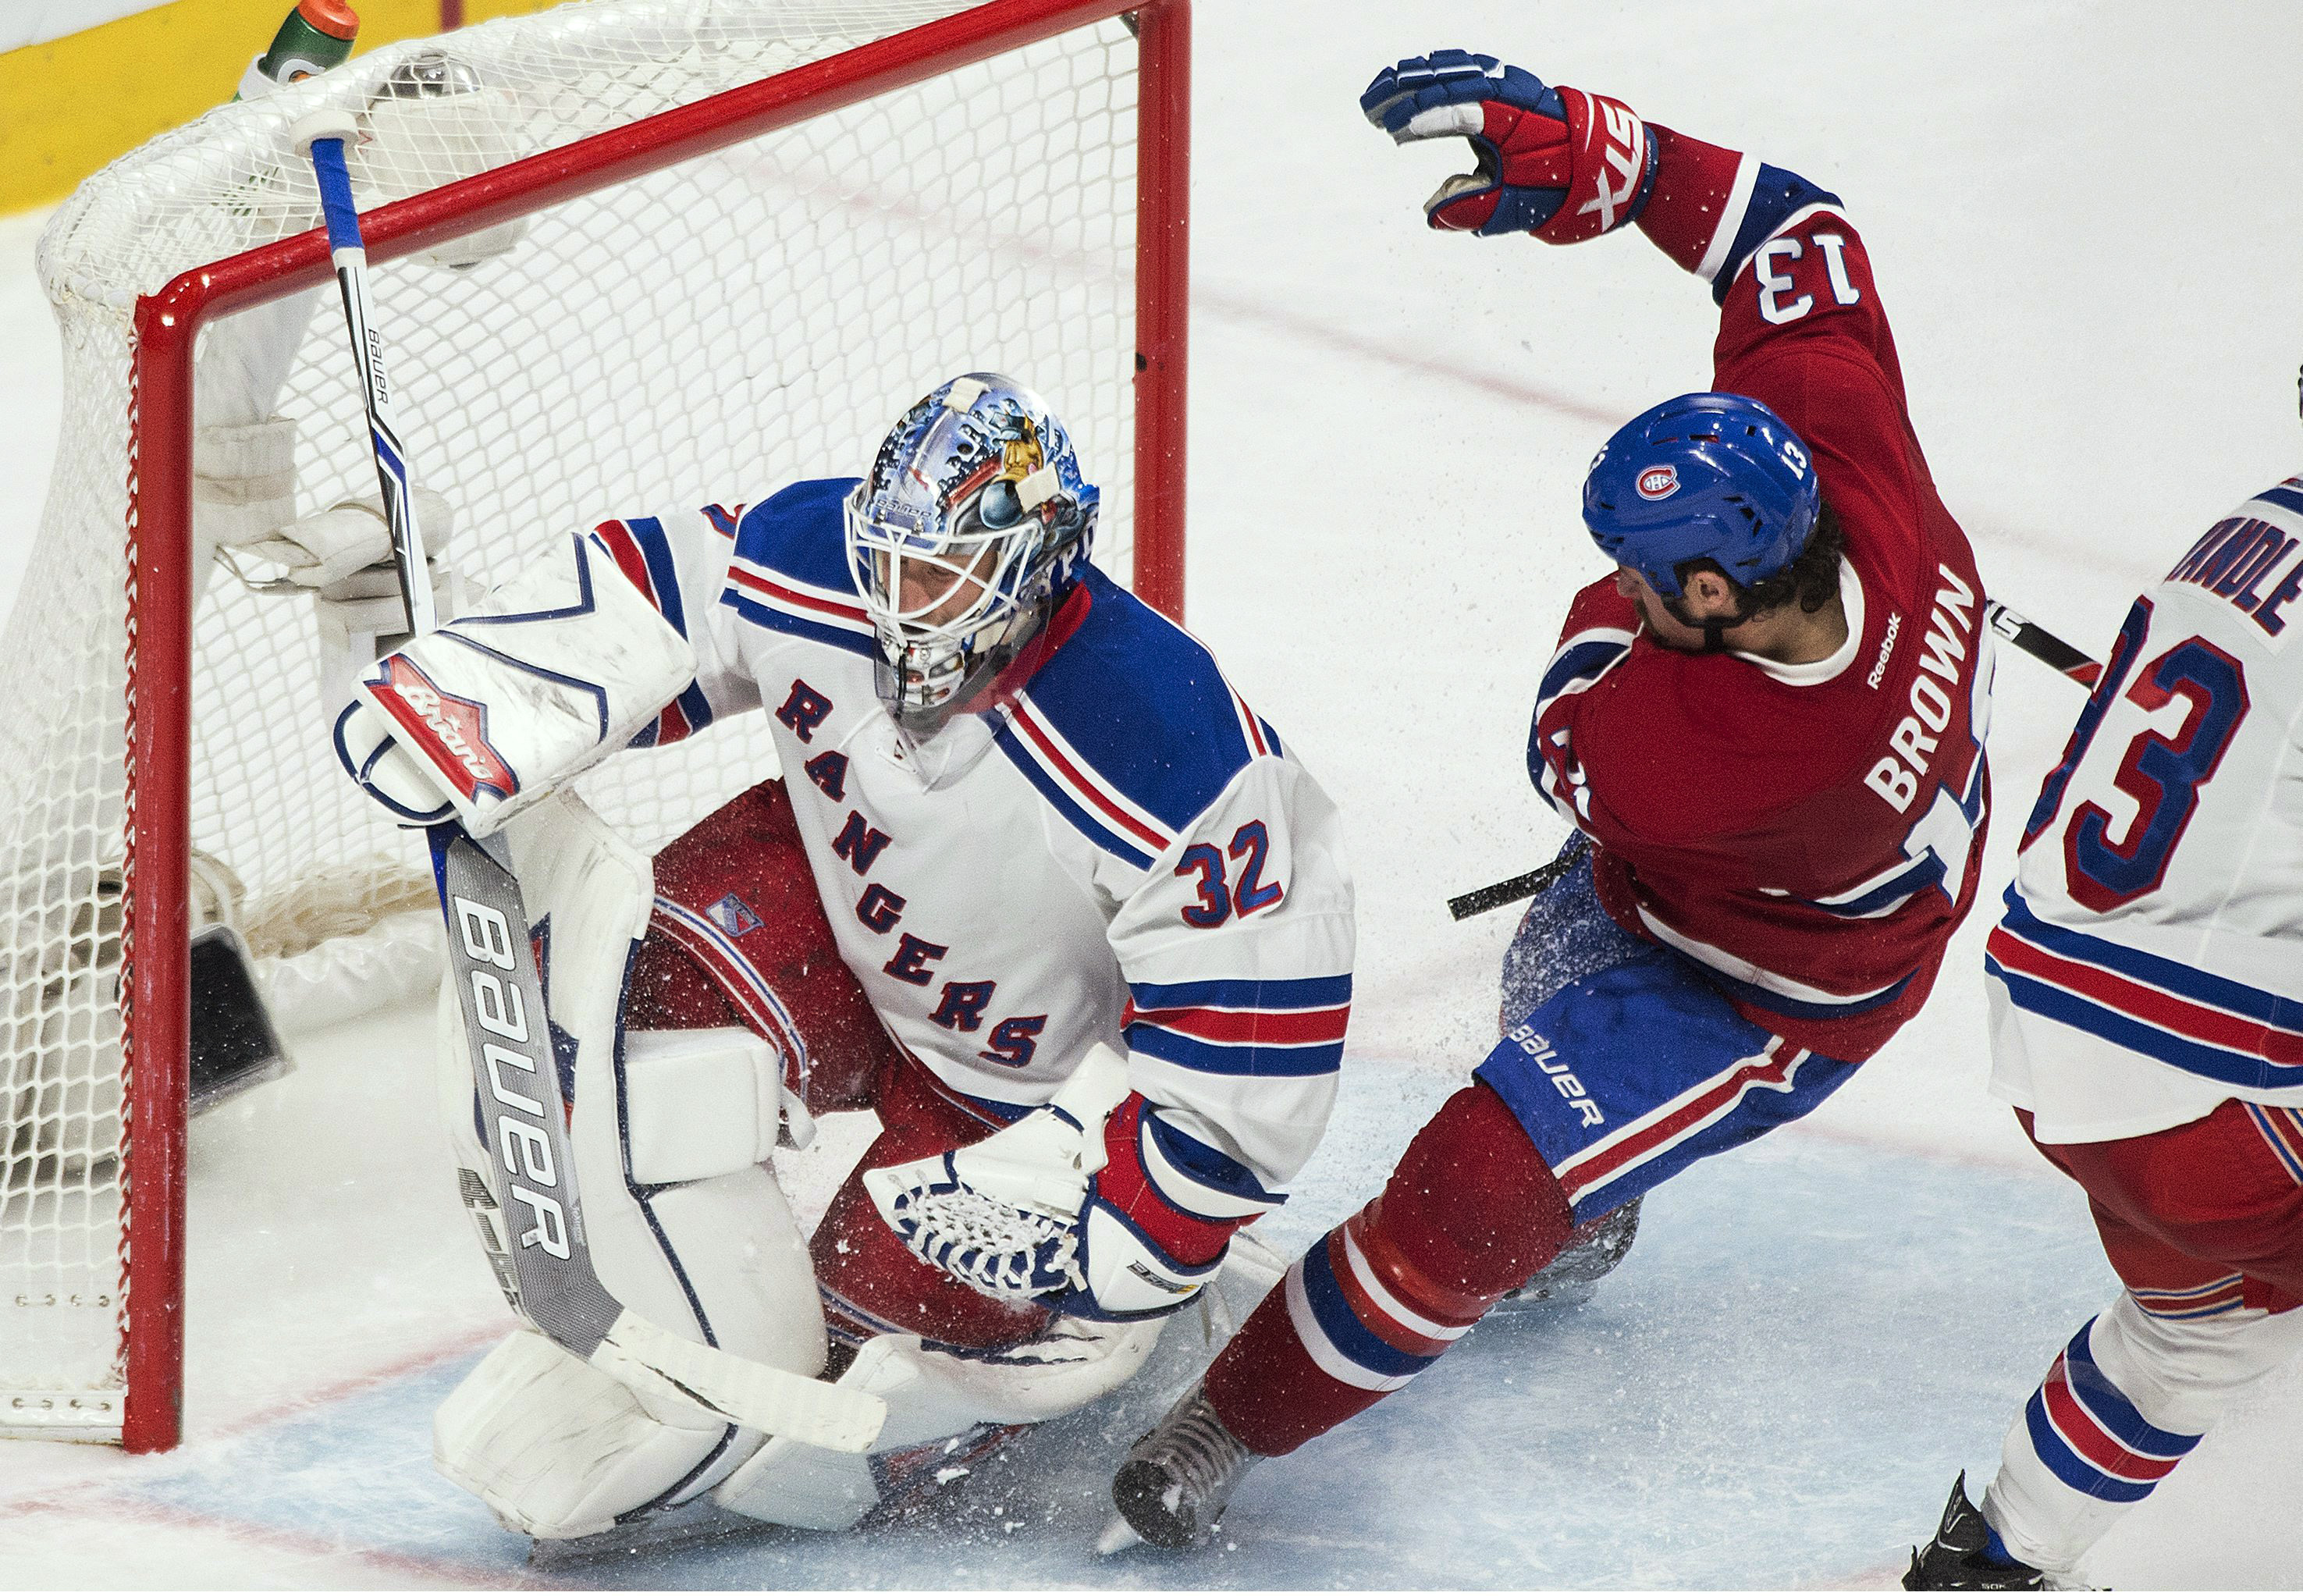 Montreal Canadiens' Mike Brown (13) slides in on New York Rangers goaltender Antti Raanta during the third period of an NHL hockey game in Montreal, Saturday, March 26, 2016. (Graham Hughes/The Canadian Press via AP)